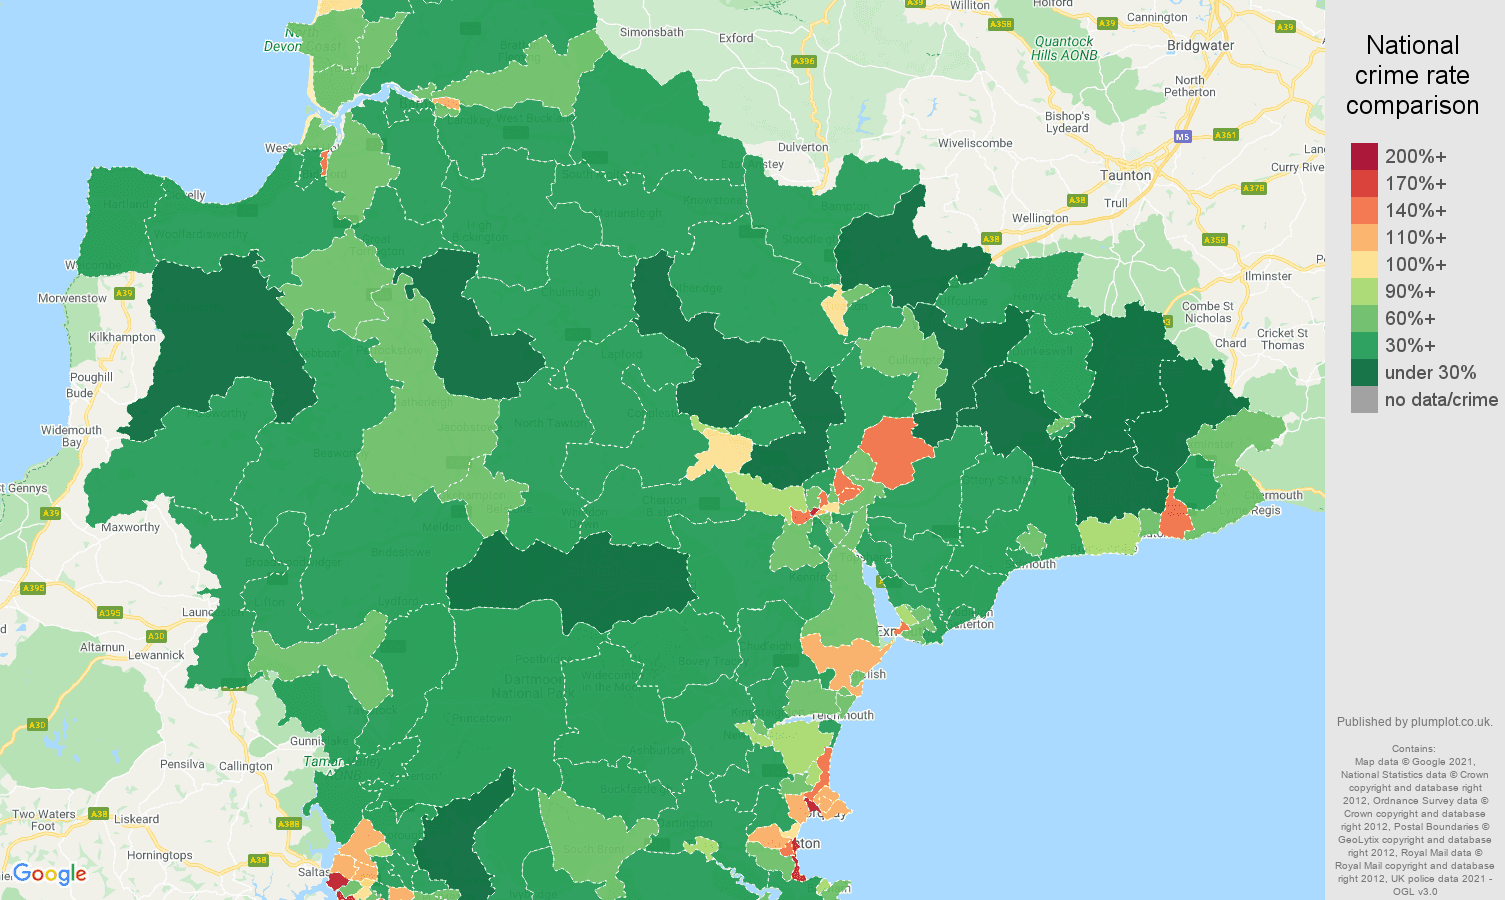 Devon antisocial behaviour crime rate comparison map